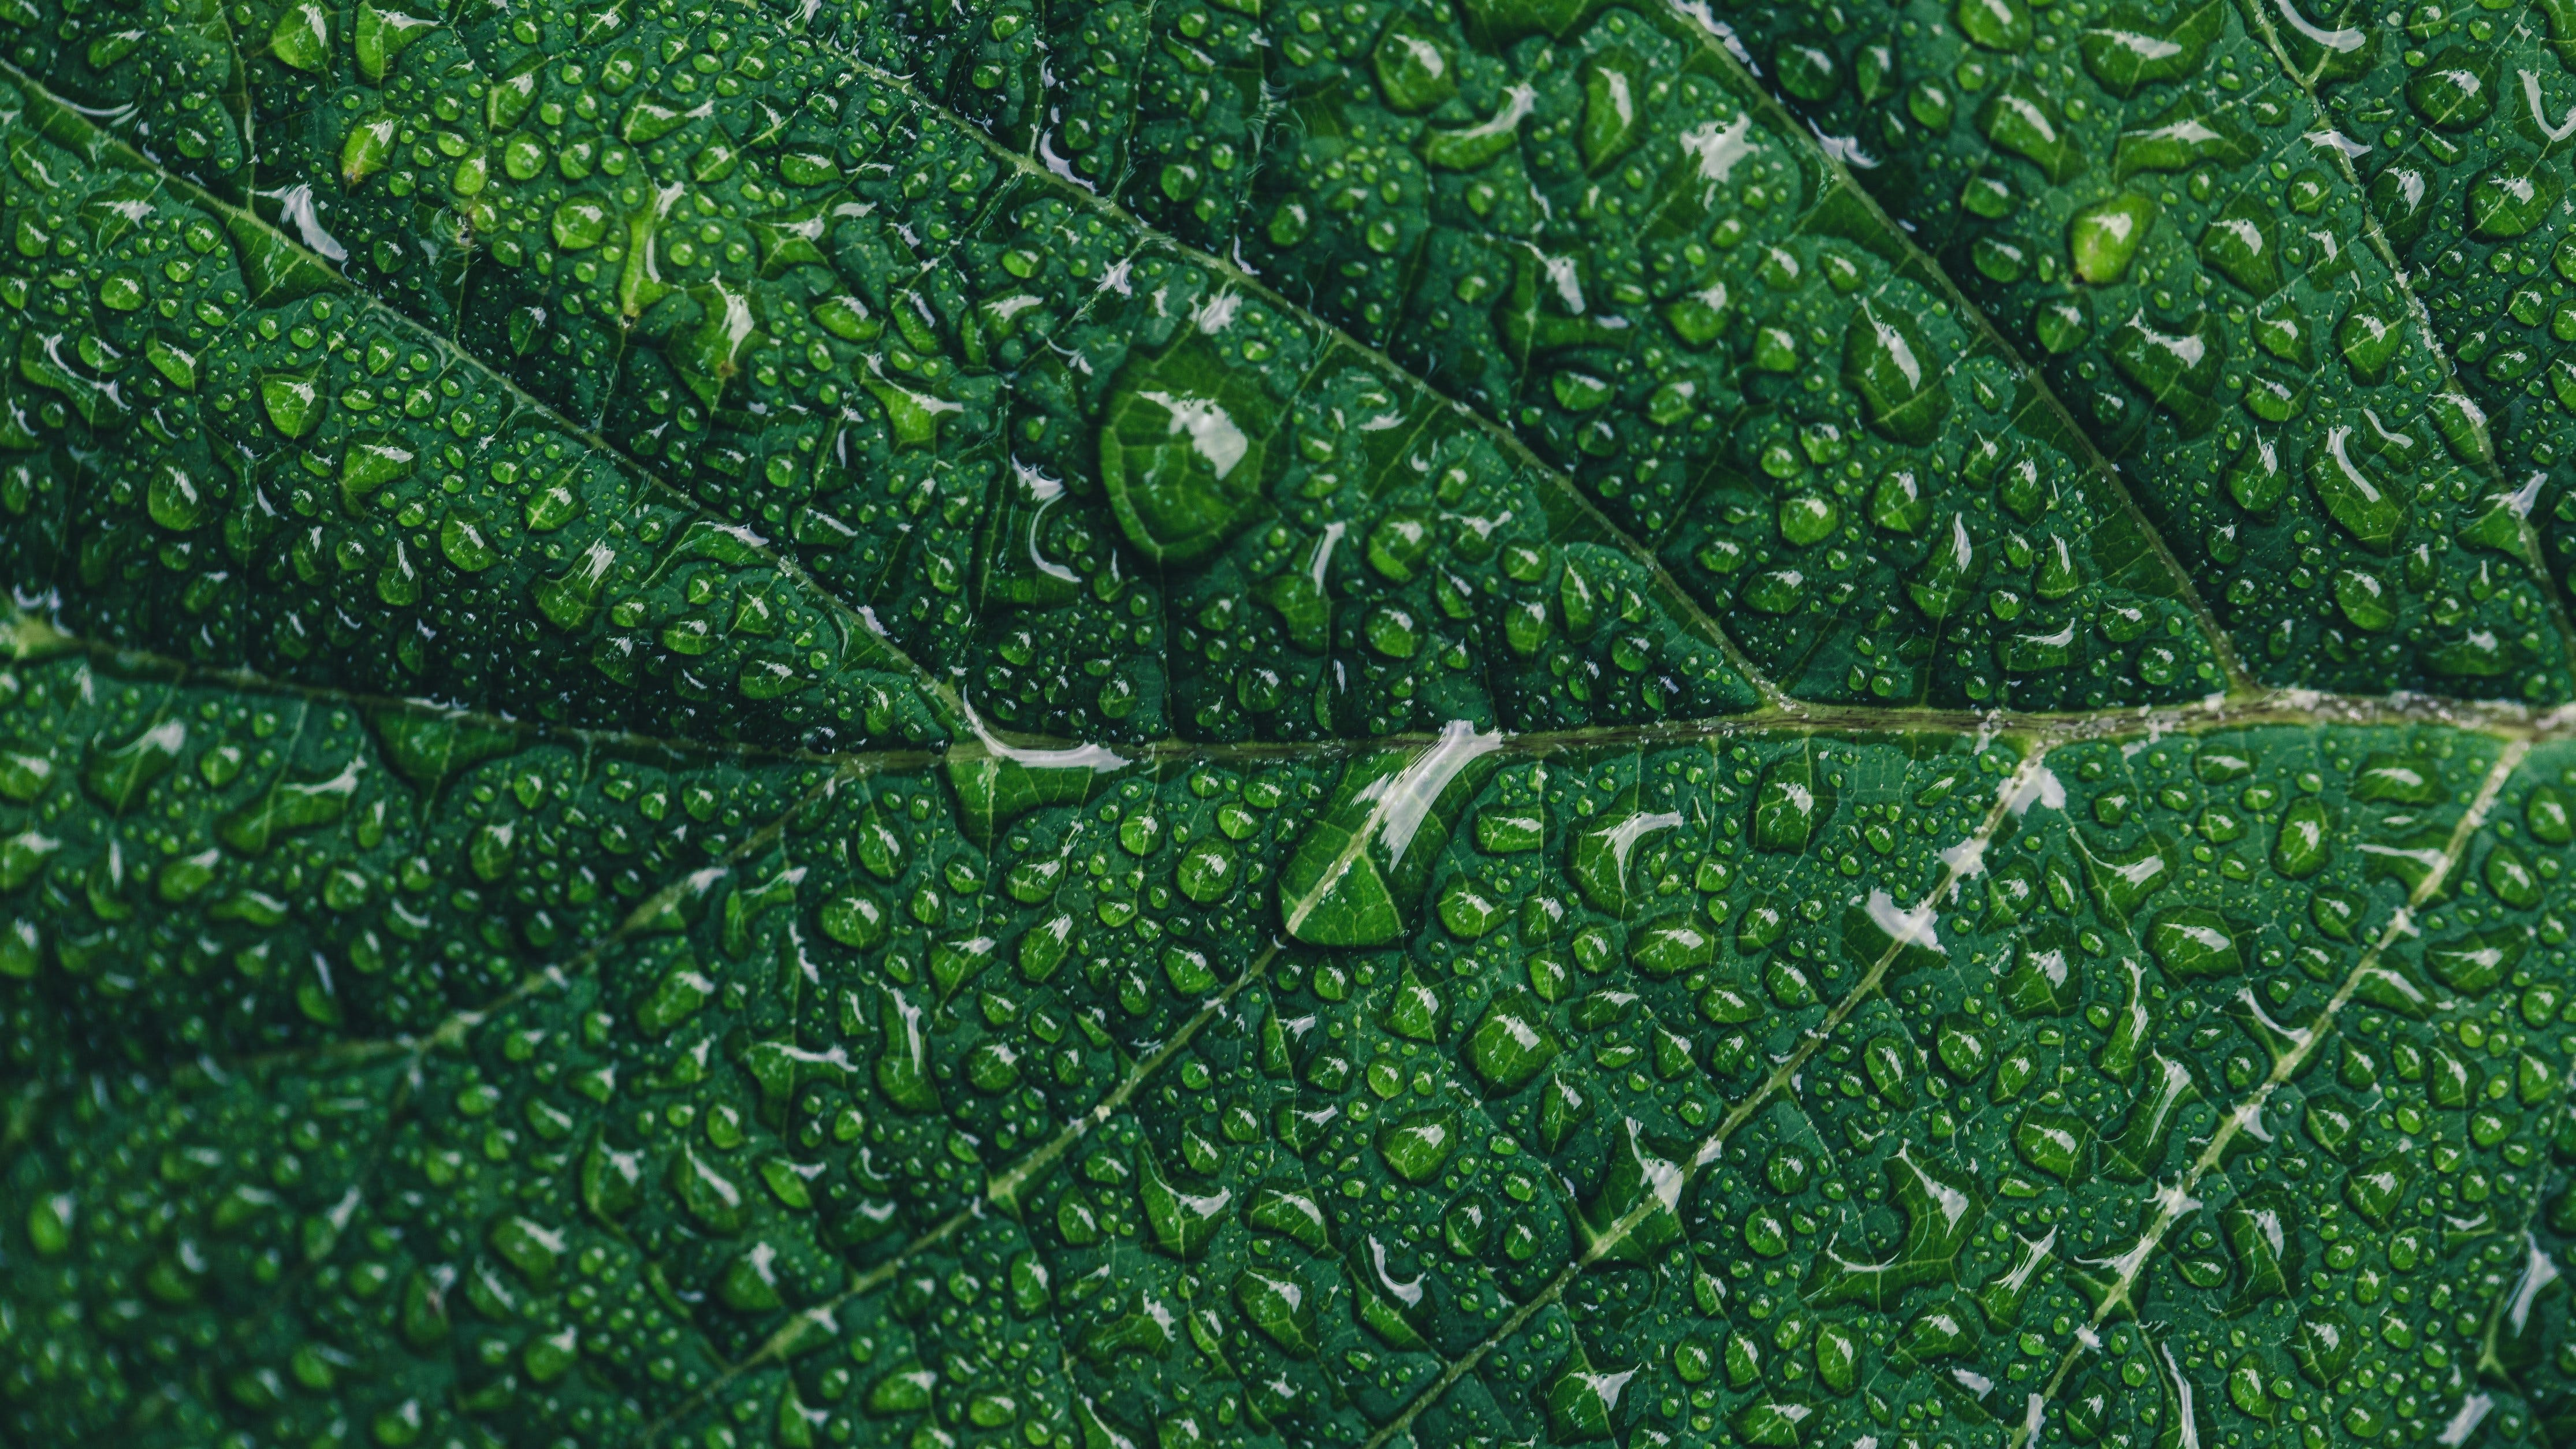 Close-up Photography of Green Leaf With Drops of Water